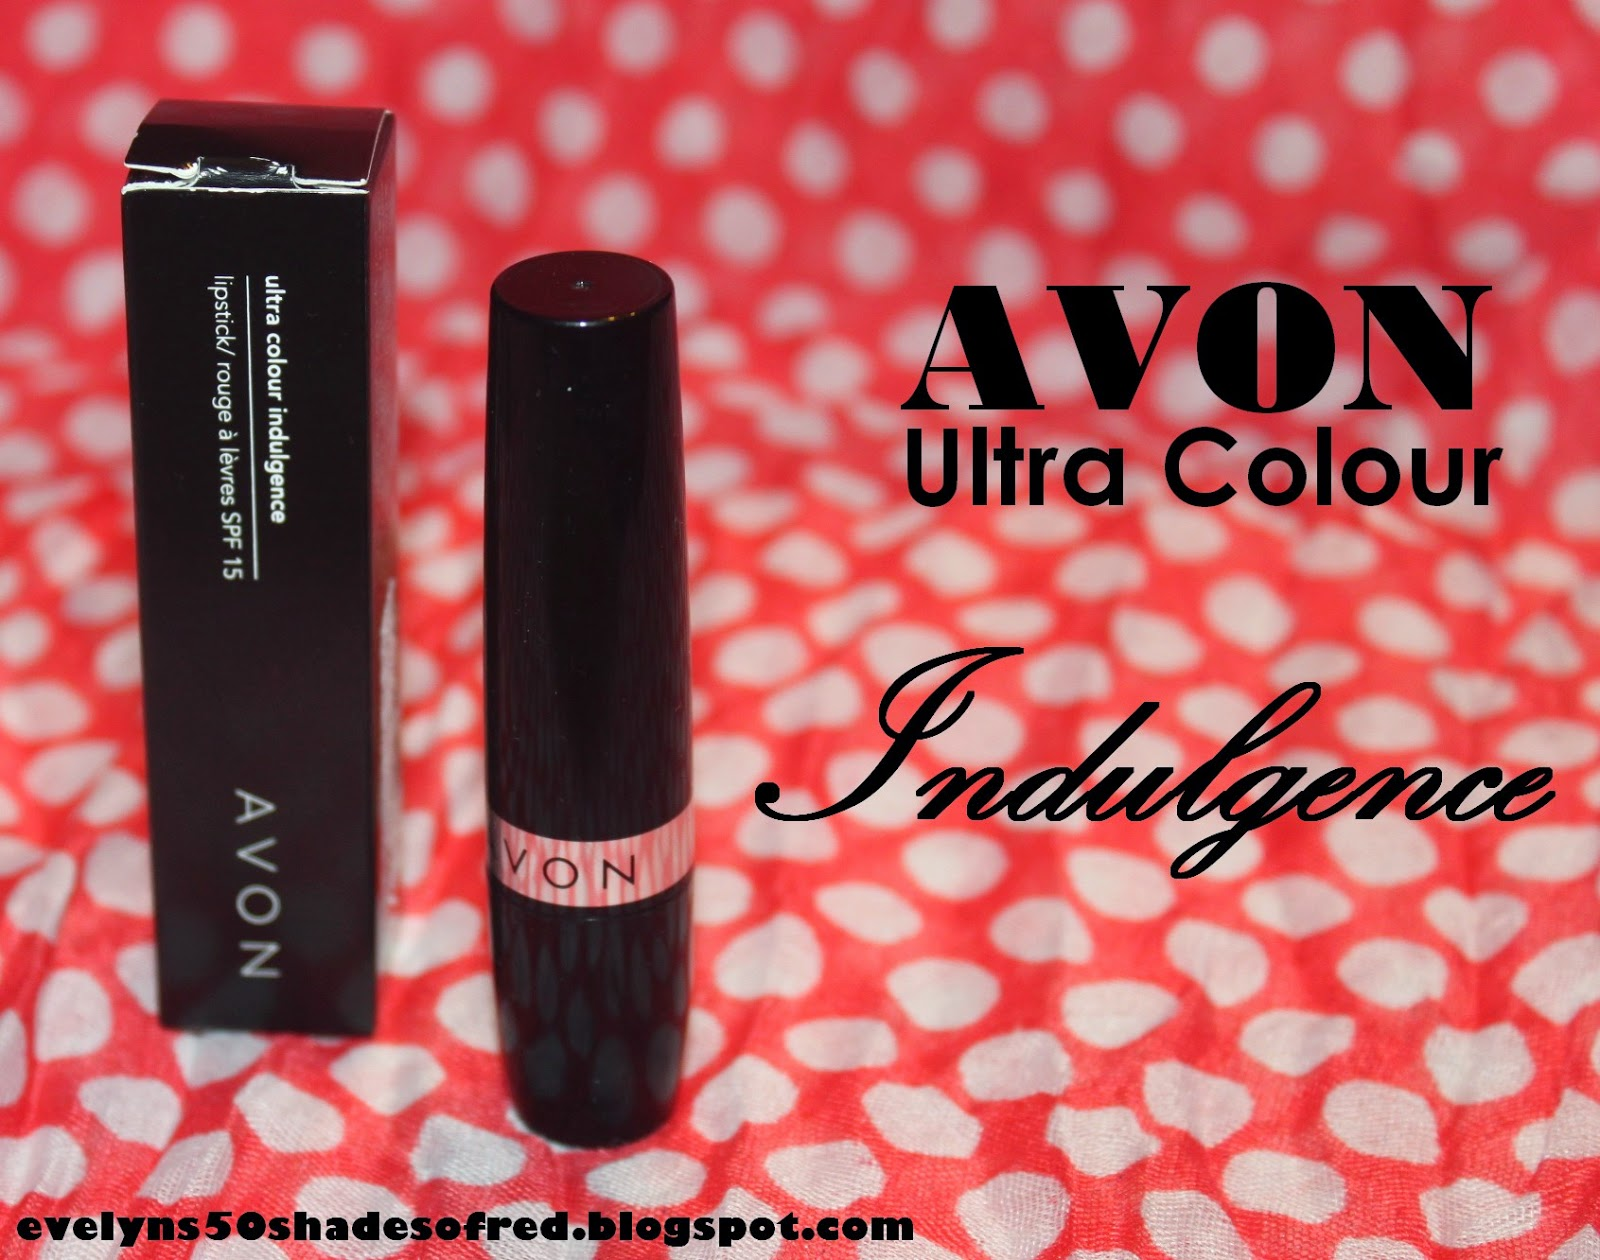 Avon Ultra Colour Indulgence Pink Blossom, Royal Peony, Rose Bouquet, Red Tulip, Red Dahlia